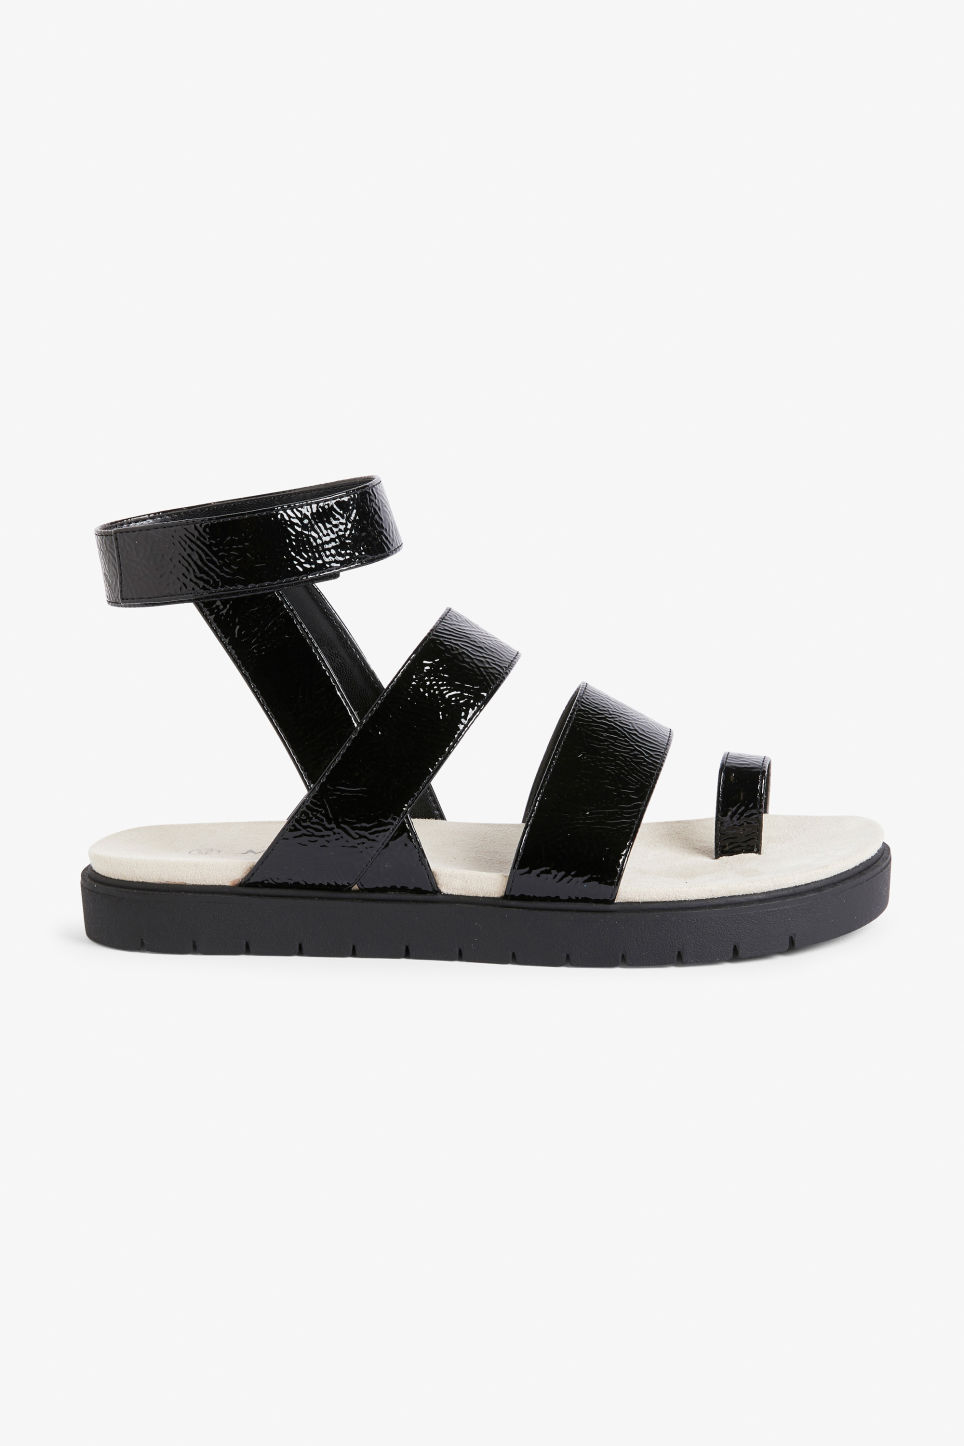 Detailed image of Monki faux leather sandals in black